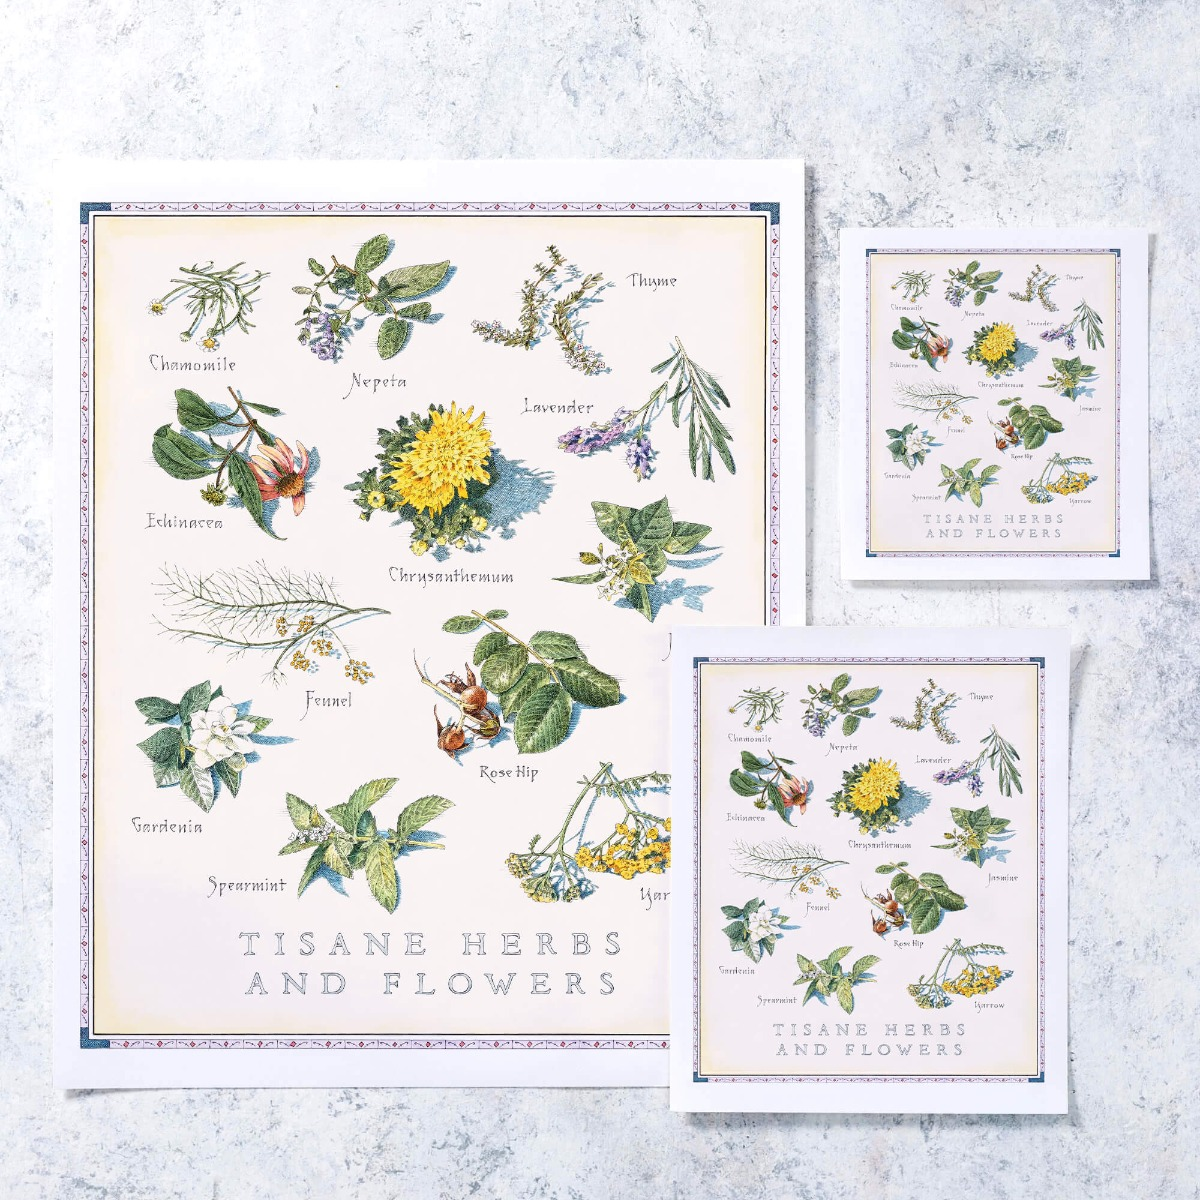 Cook's Illustrated Unframed Print: Tisane Herbs and Flowers